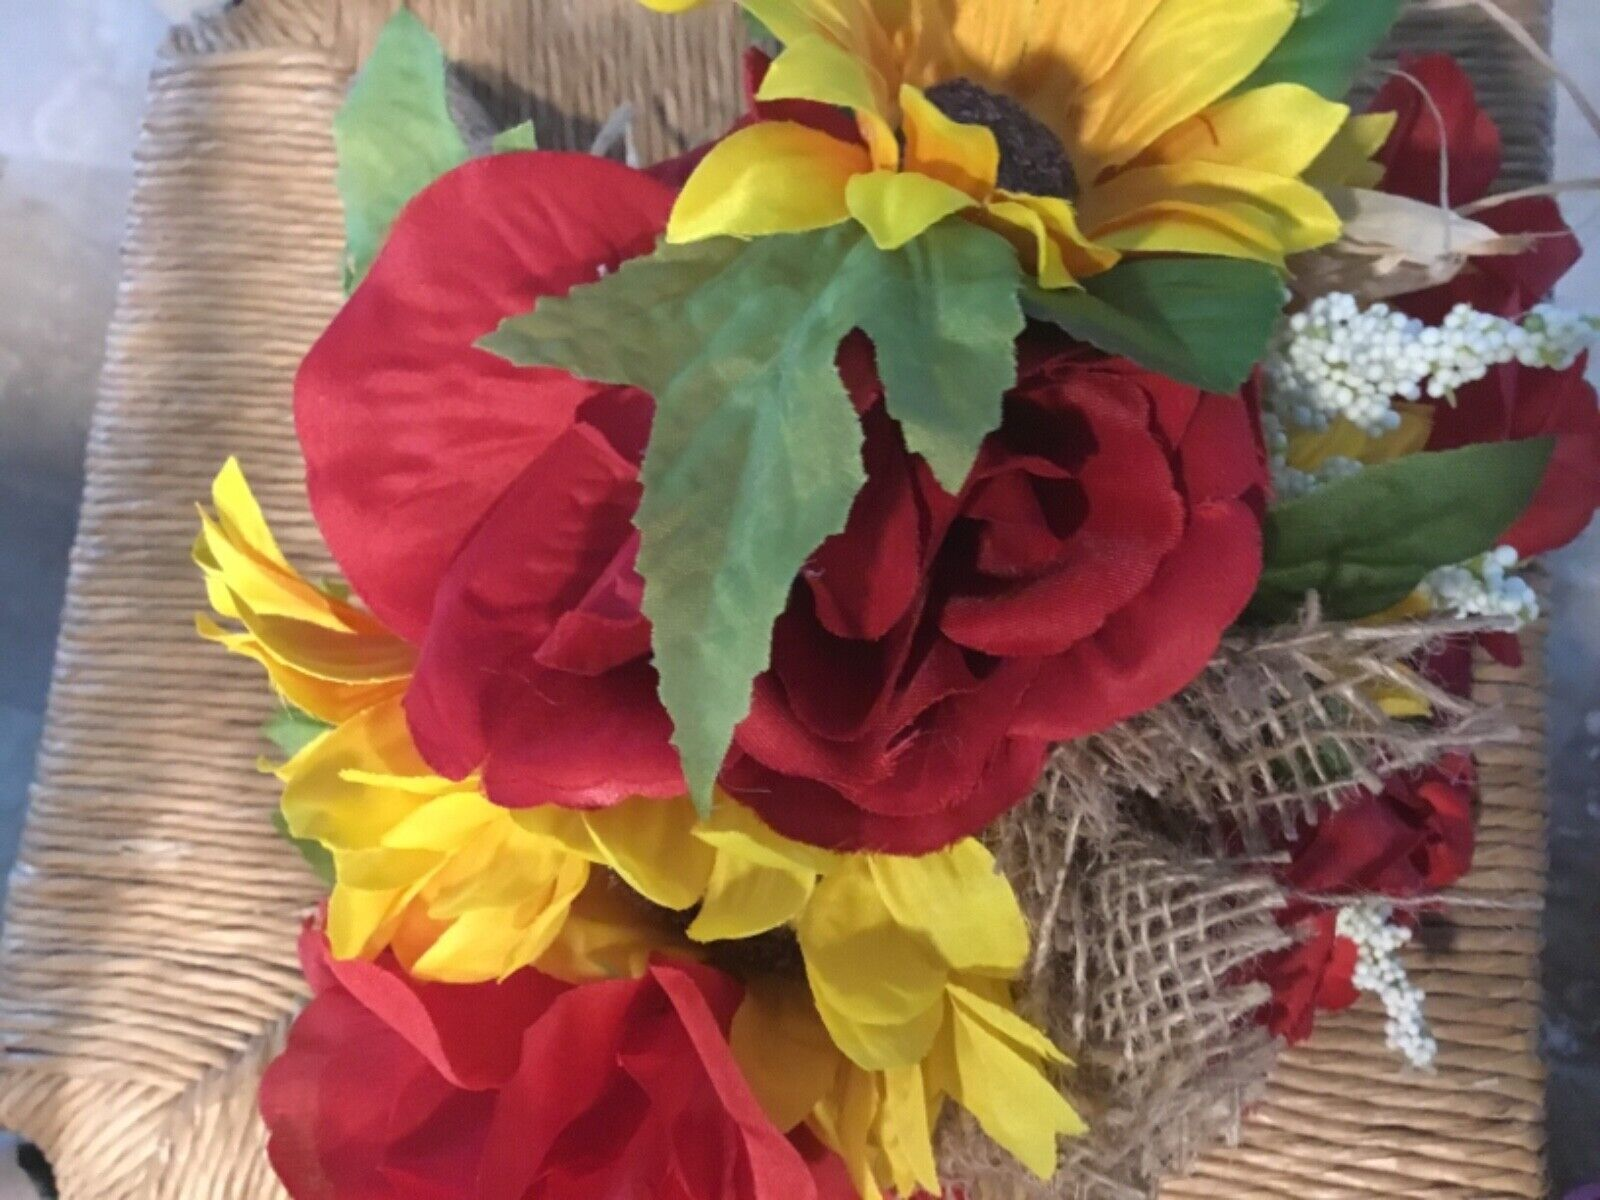 Wedding Flowers Bridal Bouquet Sunflowers Bridal Decorations Burgundy Red 8 Bouq Ebay